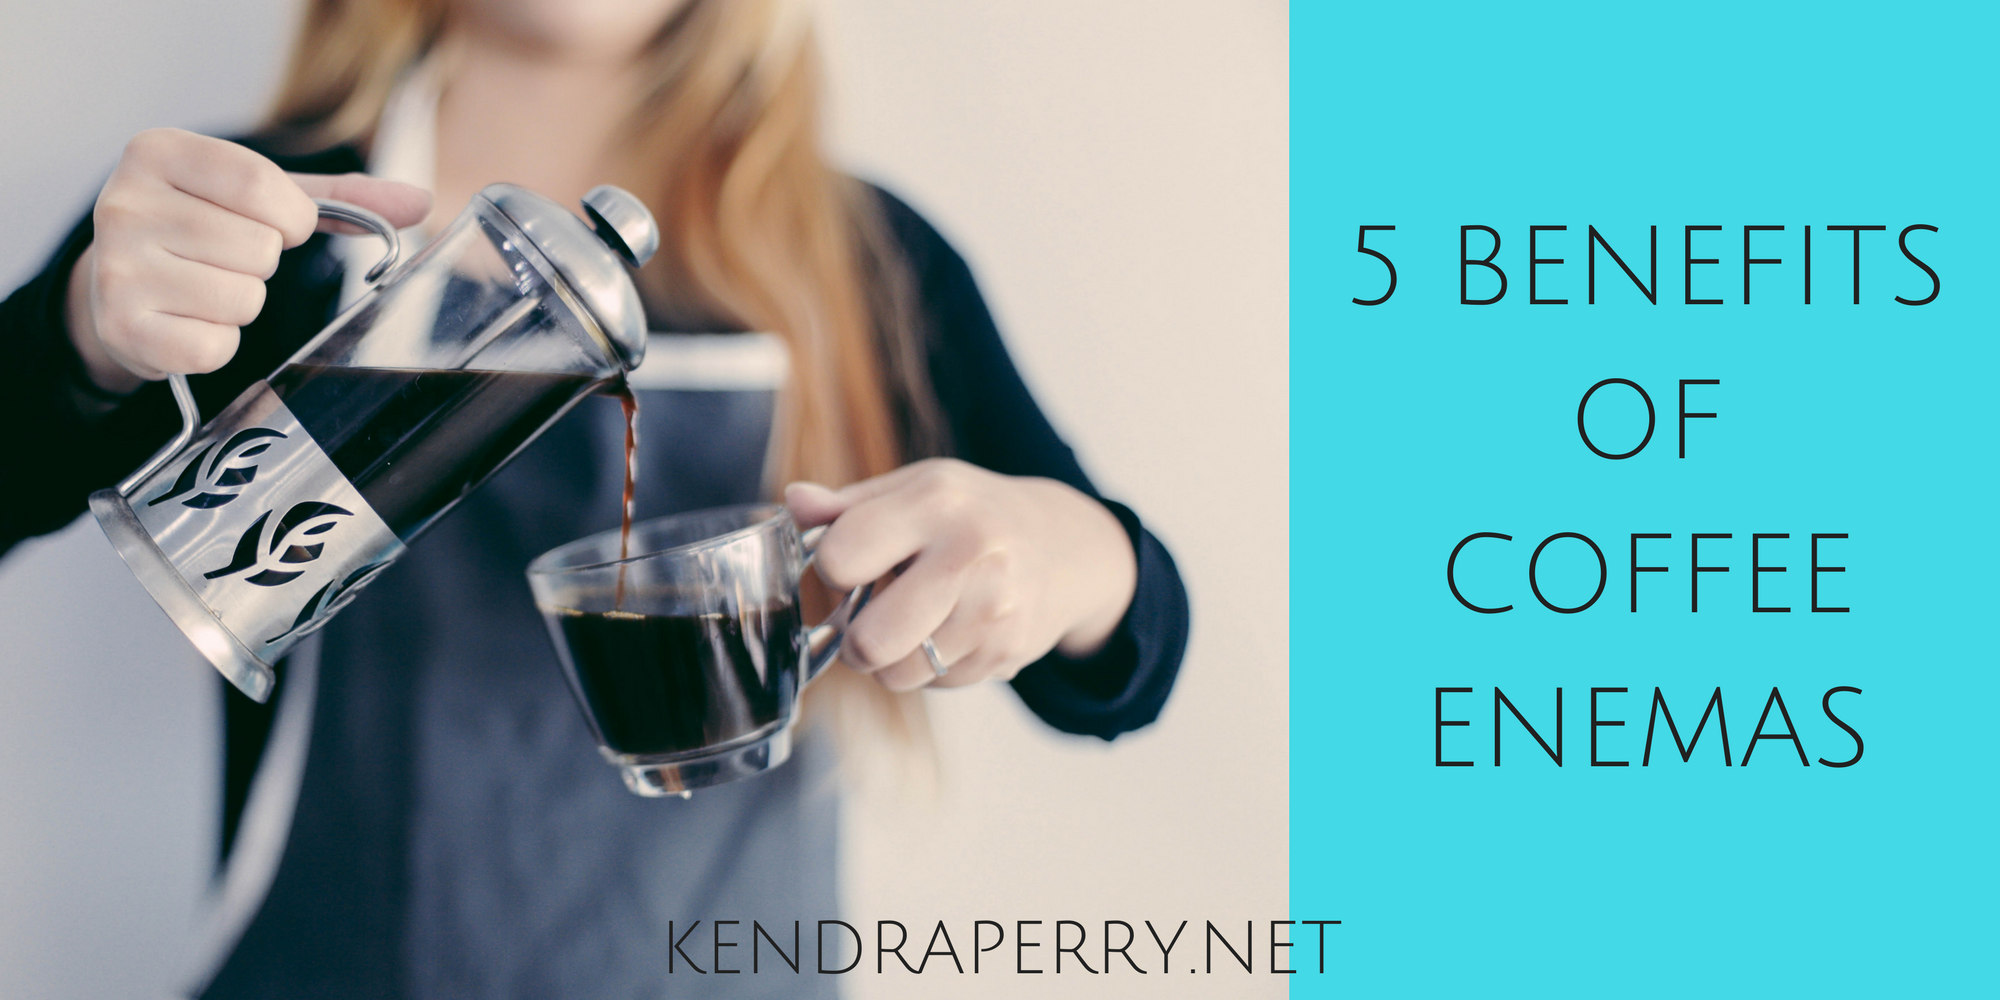 5 BENEFITS OF COFFEE ENEMAS